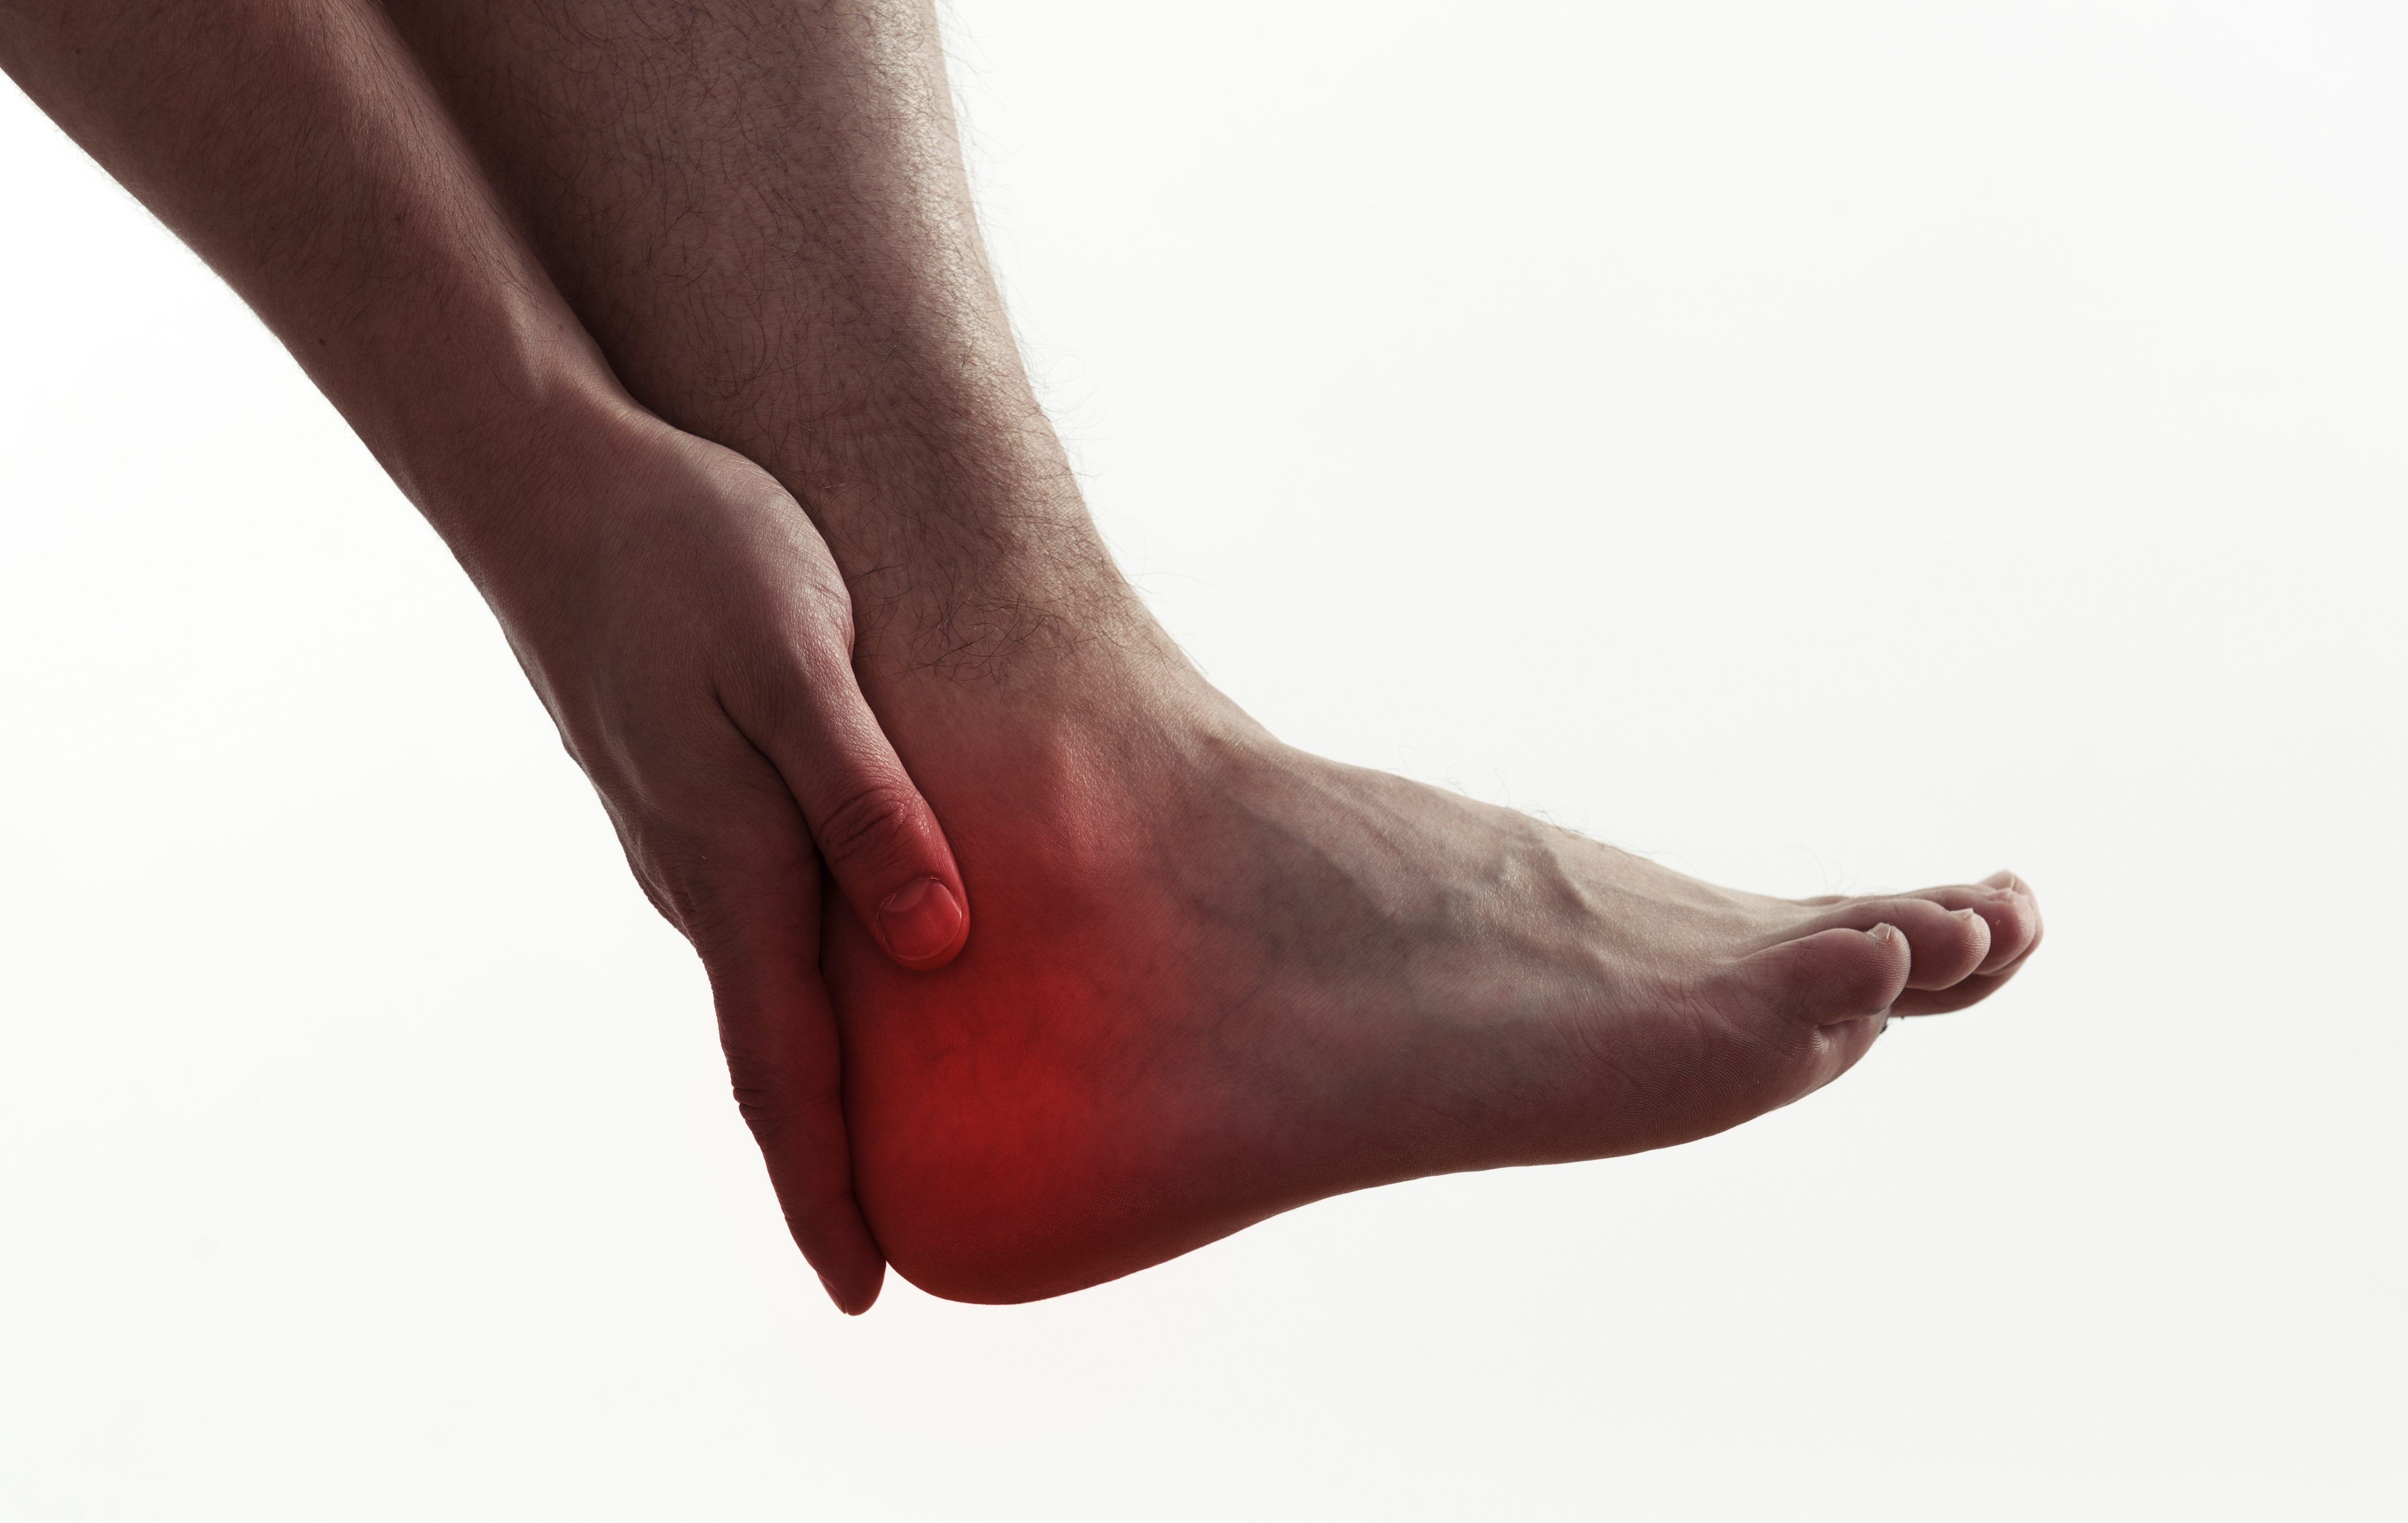 Surgery for Plantar Fasciitis: How It's Performed and Who Needs It